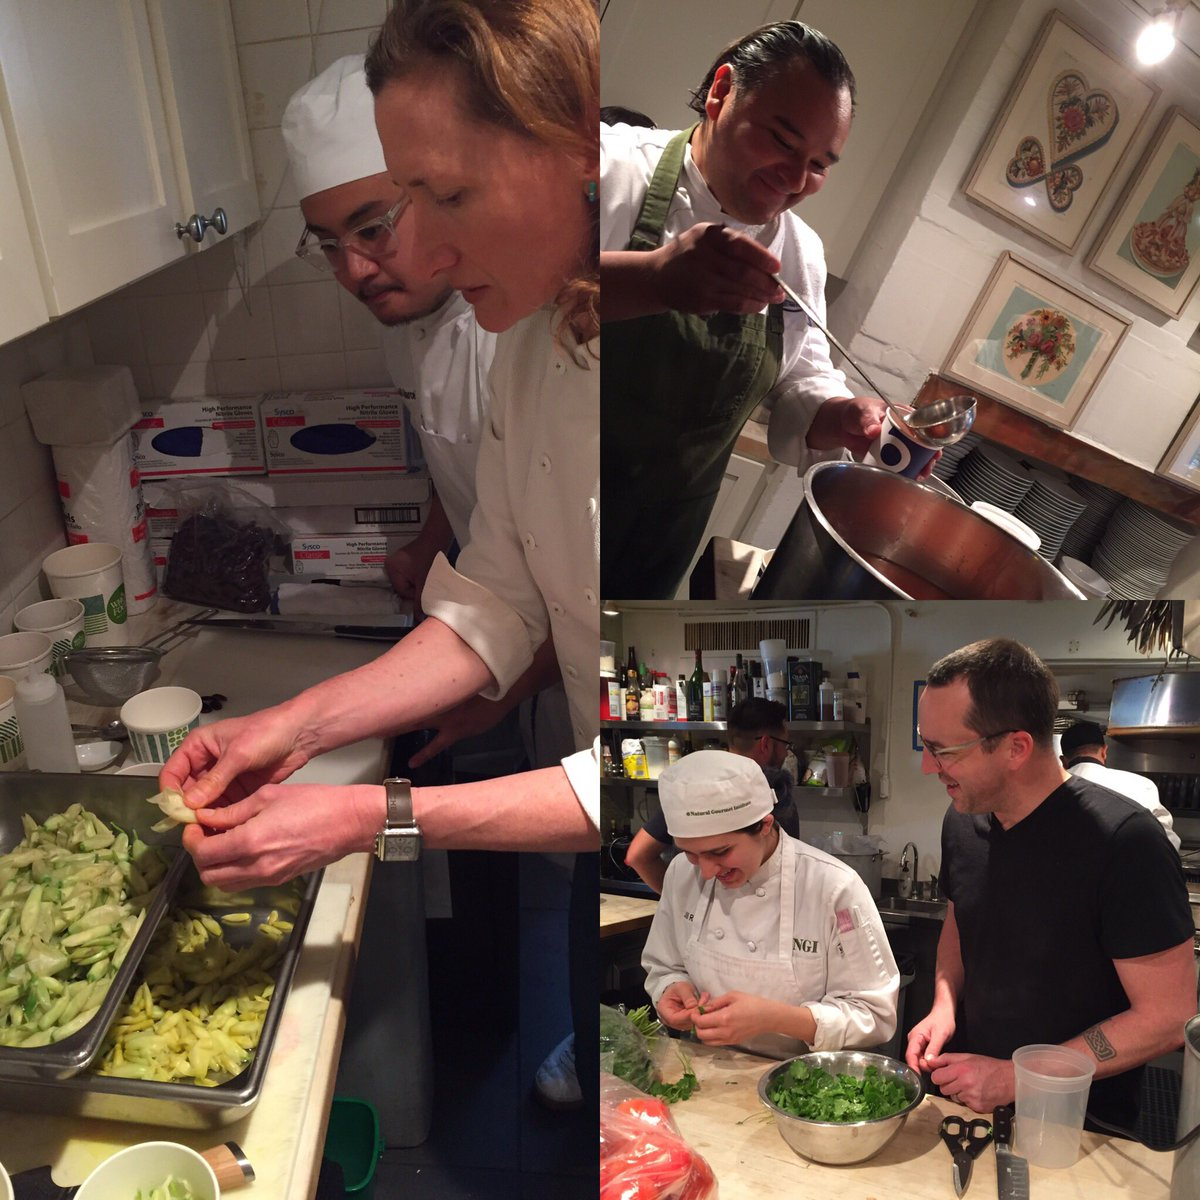 Things are well under way for Chefs Johnny Hernandez, Steve McHugh and Elizabeth Johnson at the James Beard House kitchen. Tonight they will showcase San Antonios 300 years of food history! #visitSA #texnext